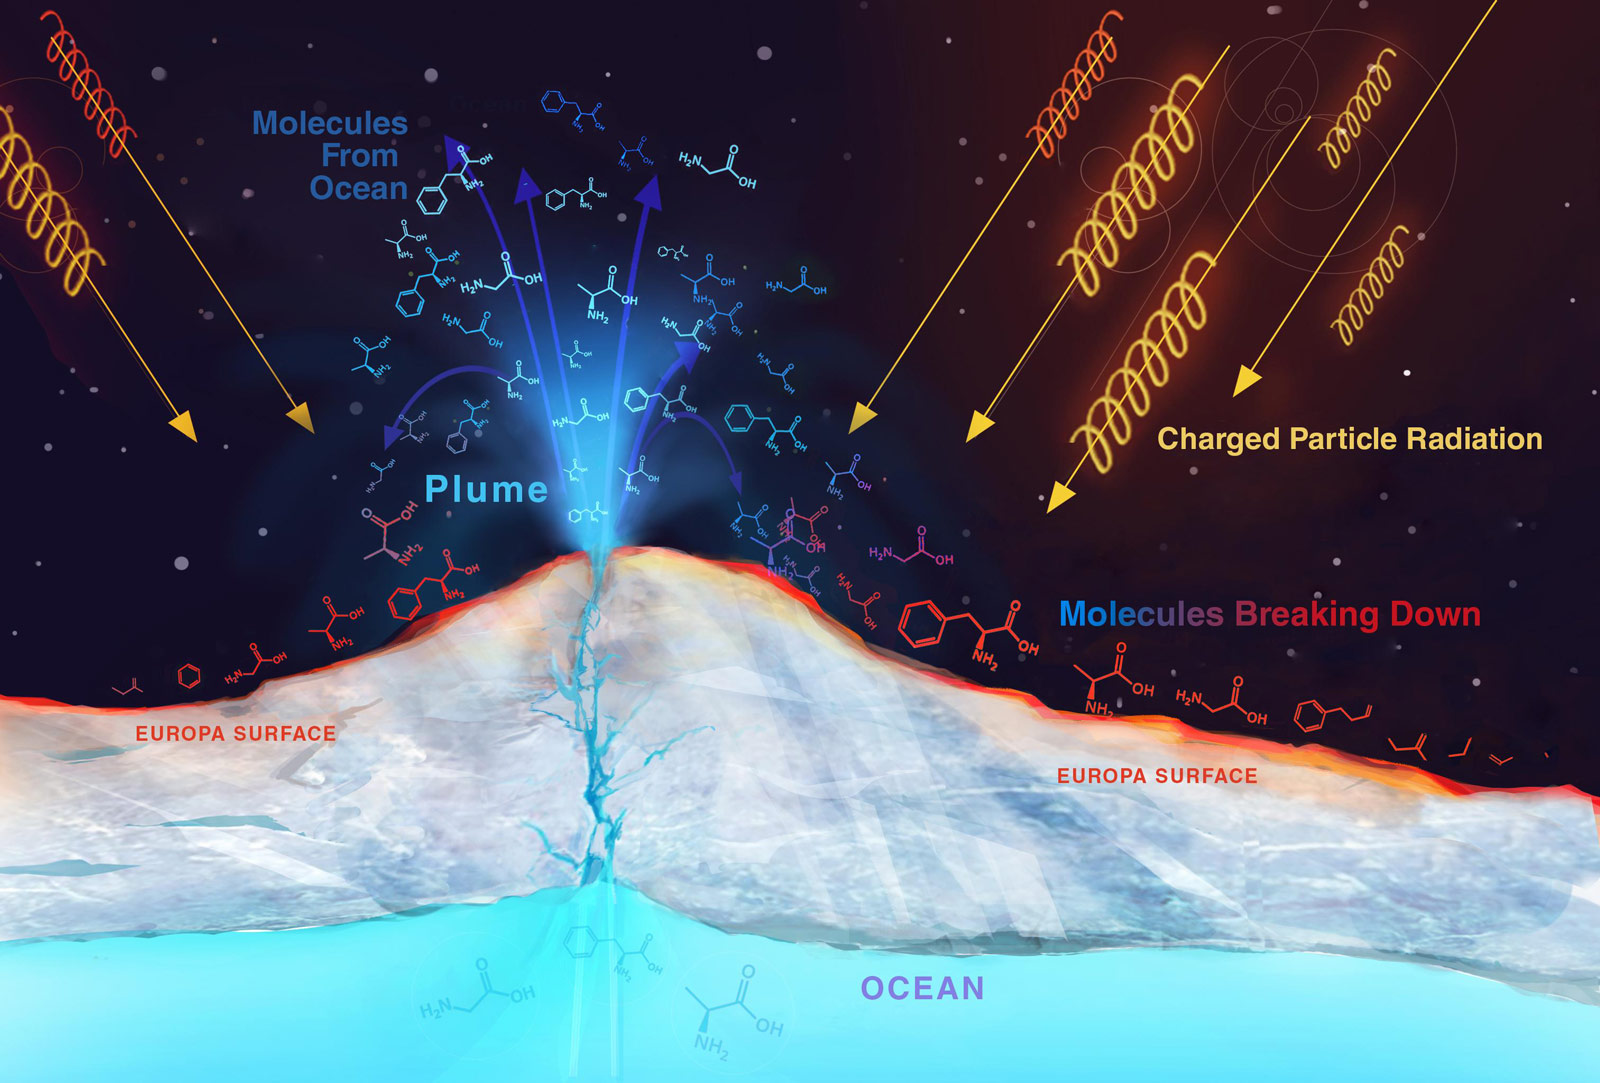 Graphic showing radiation effects on Europa's icy surface.